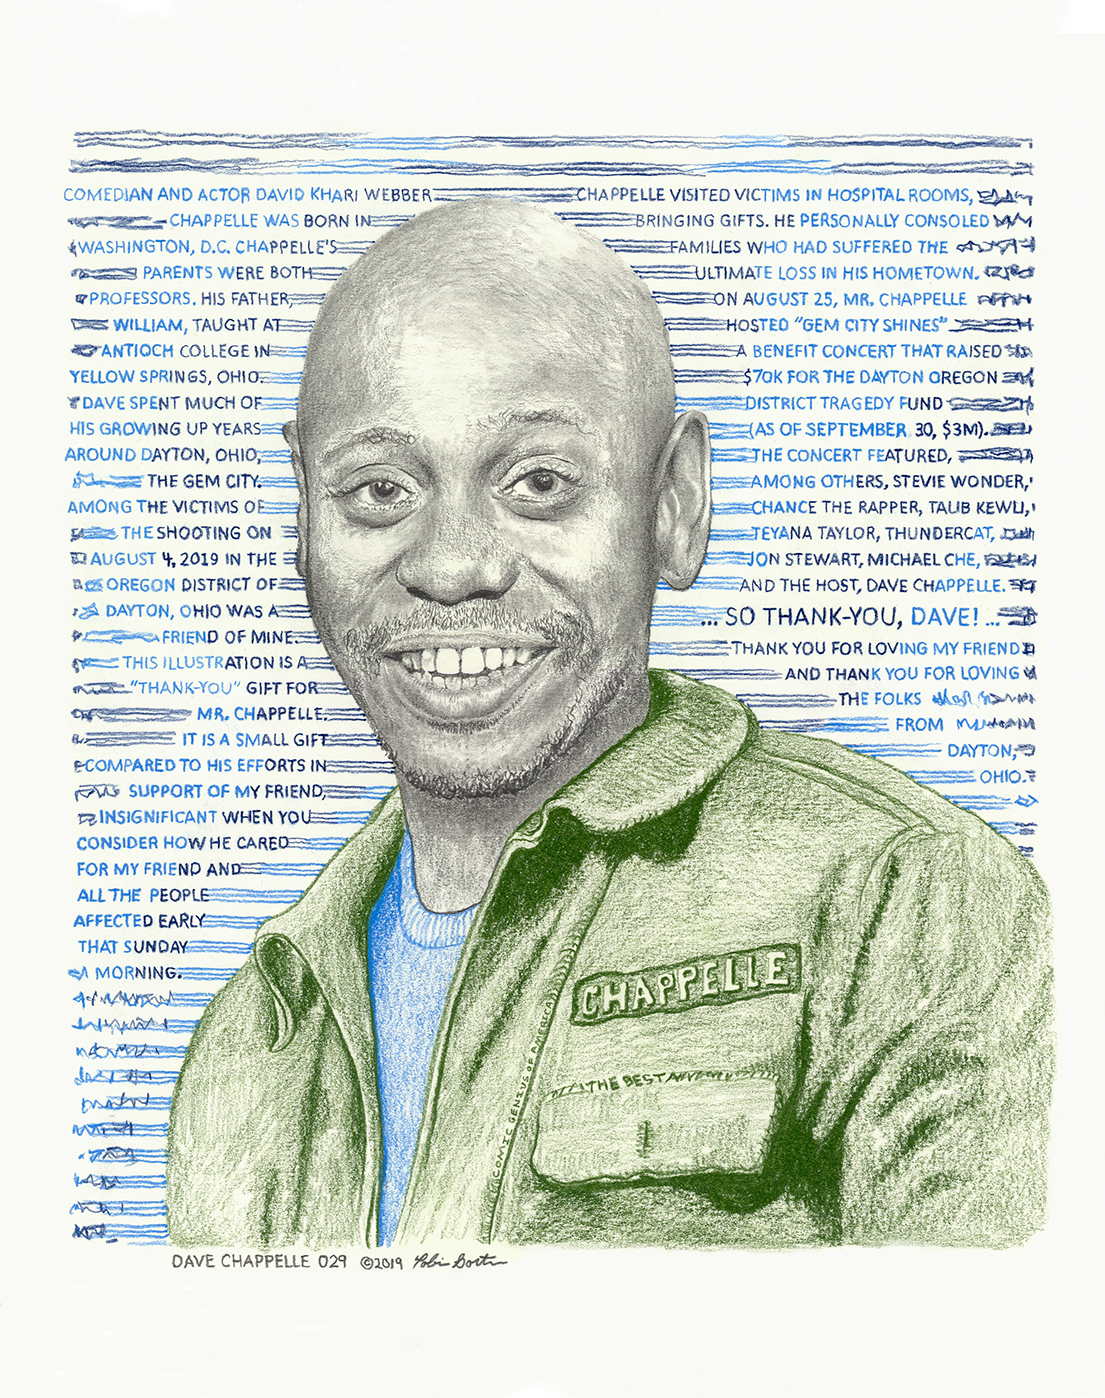 dave chappelle rgb thumb